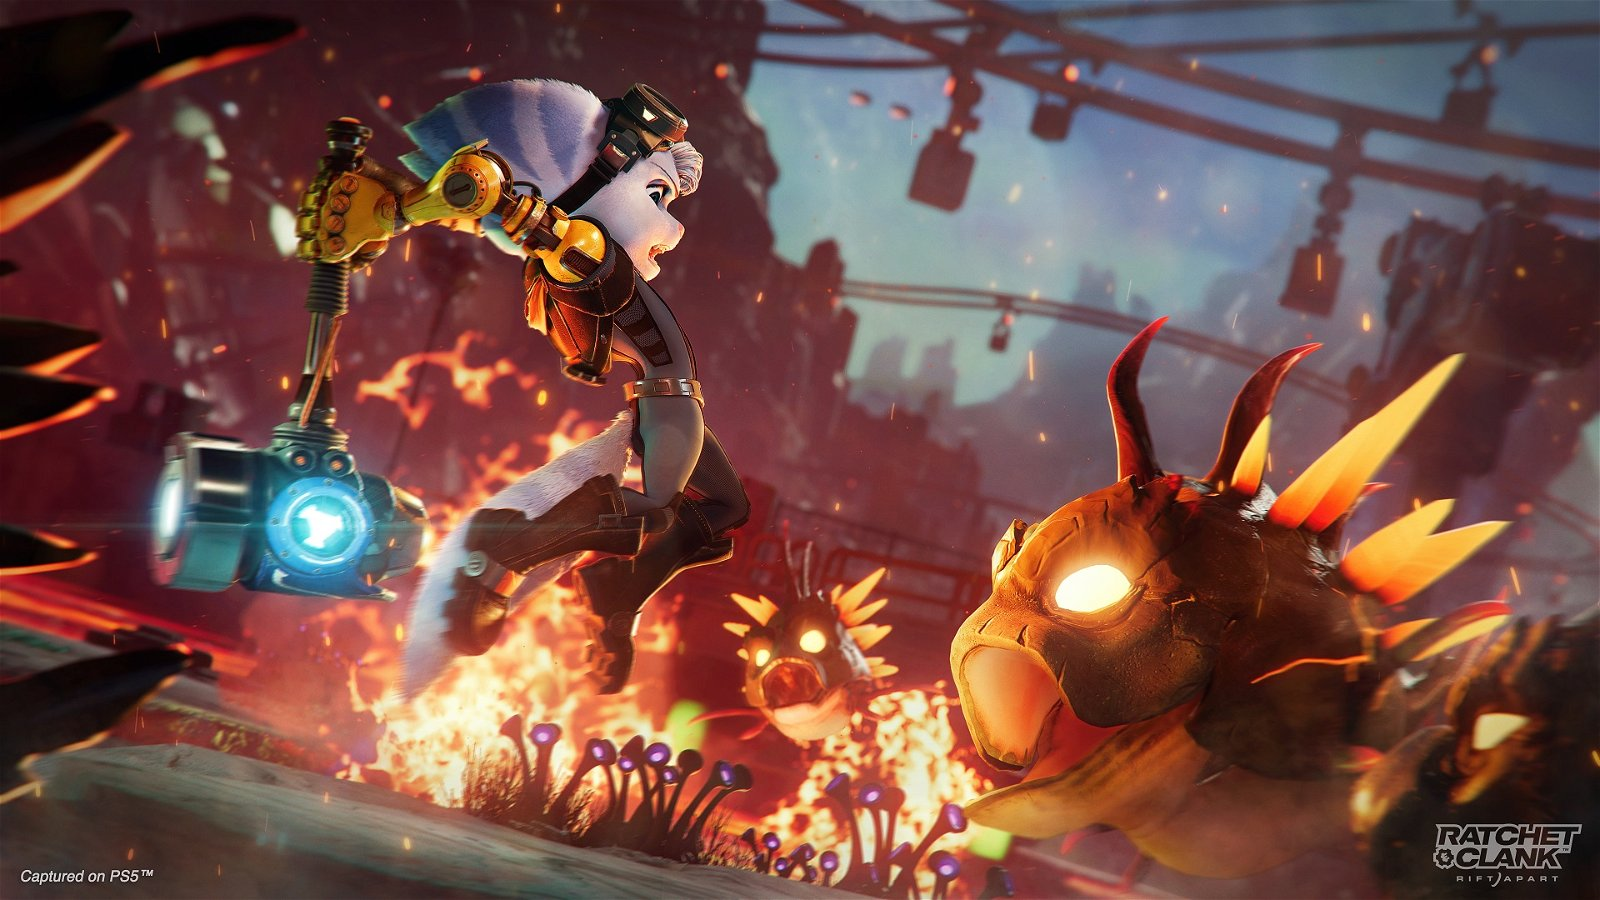 Ratchet & Clank: Rift Apart Devs On Bringing The Series to PS5